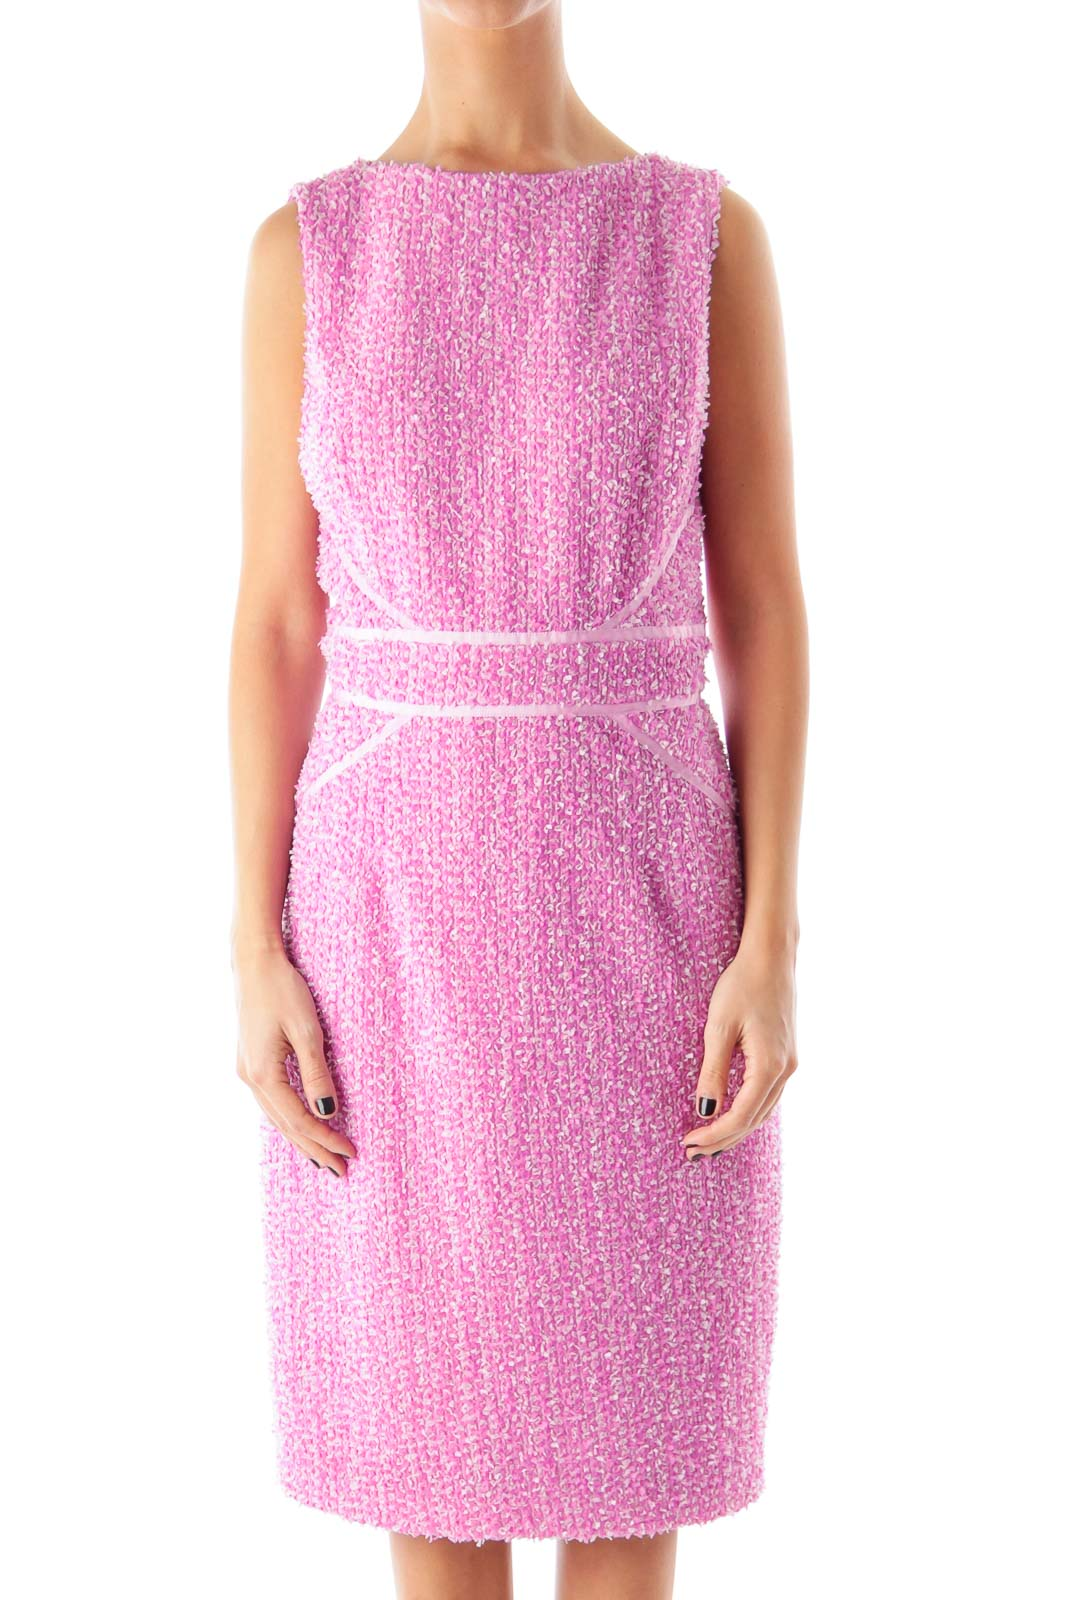 Pink Embroidered Dress Front